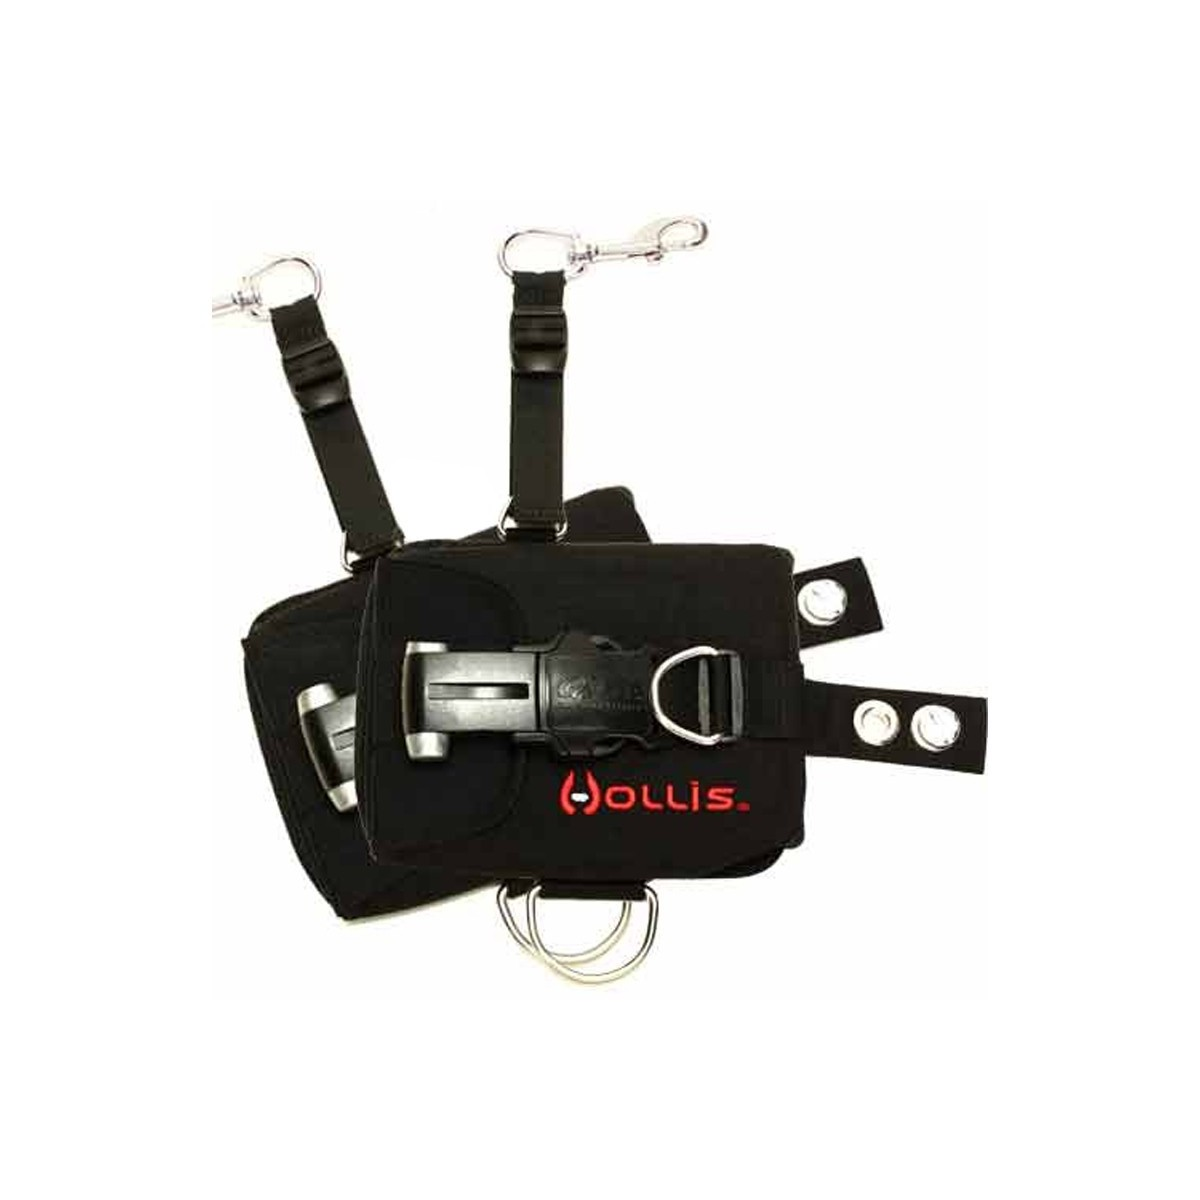 Hollis Hts 10 lb. weight system Qlr 2